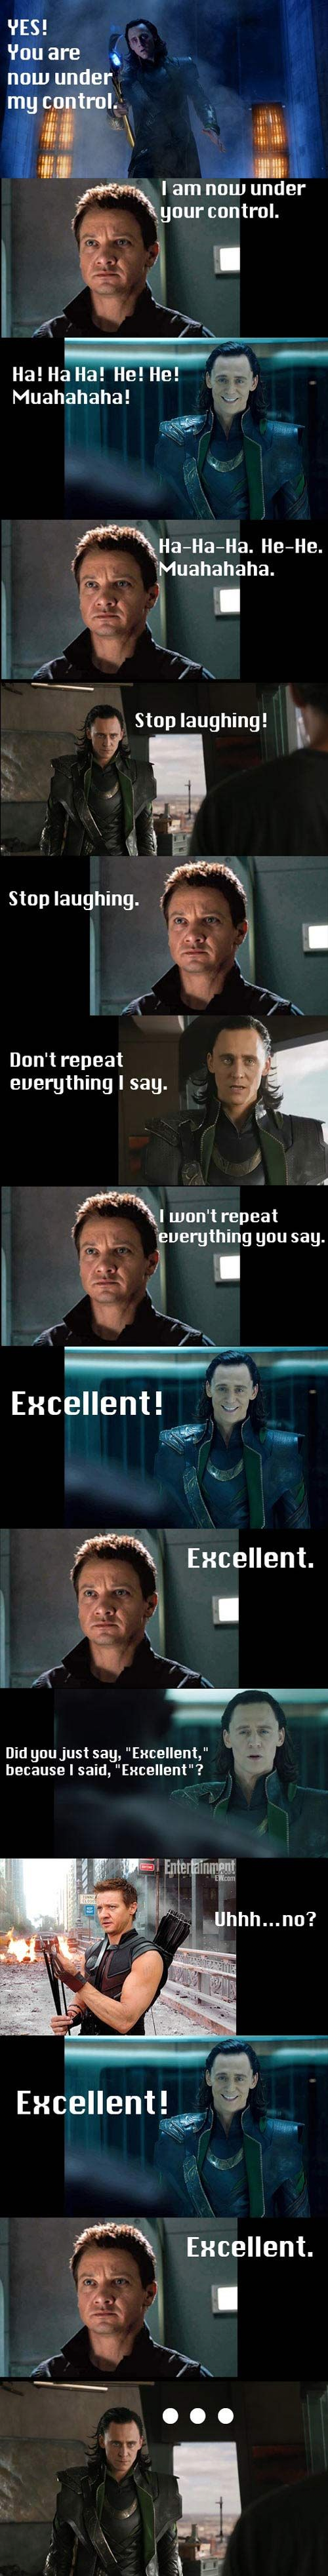 If you get this movie reference you are awesome... (Meet the Robinson's meet the Avengers!)